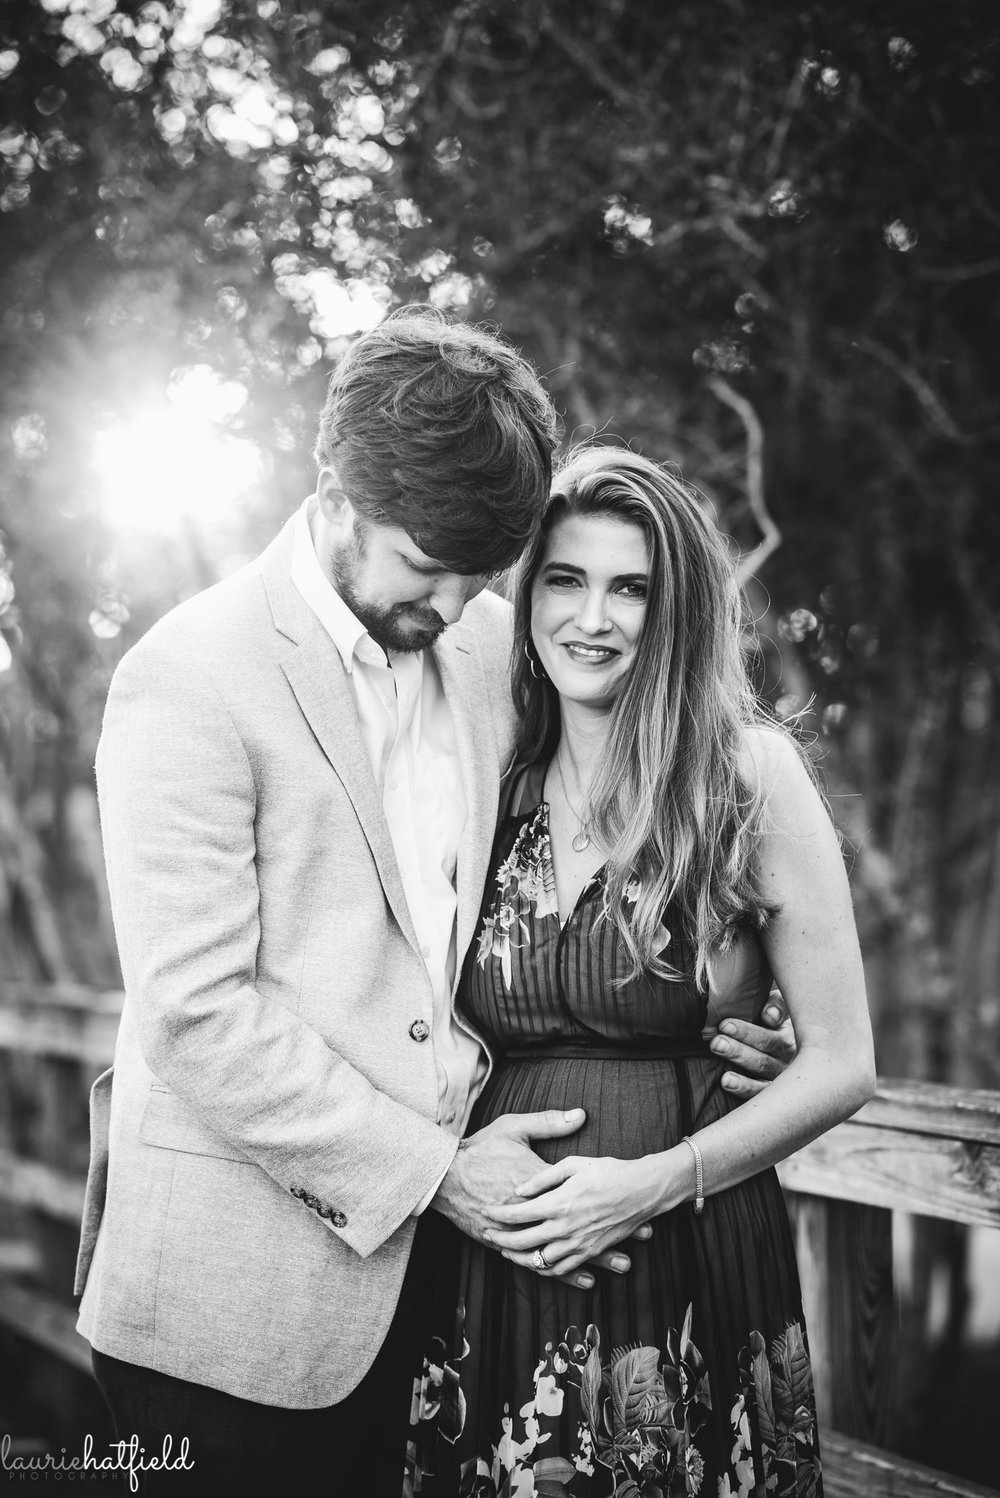 husband and wife maternity photo session | Mobile AL family photographer